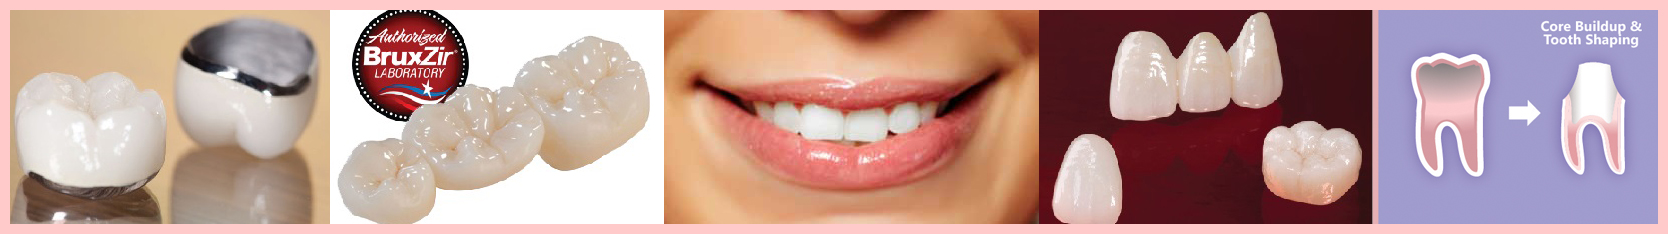 Tijuana Clinic for Cosmetic Dentistry Dental Crowns and Bridges